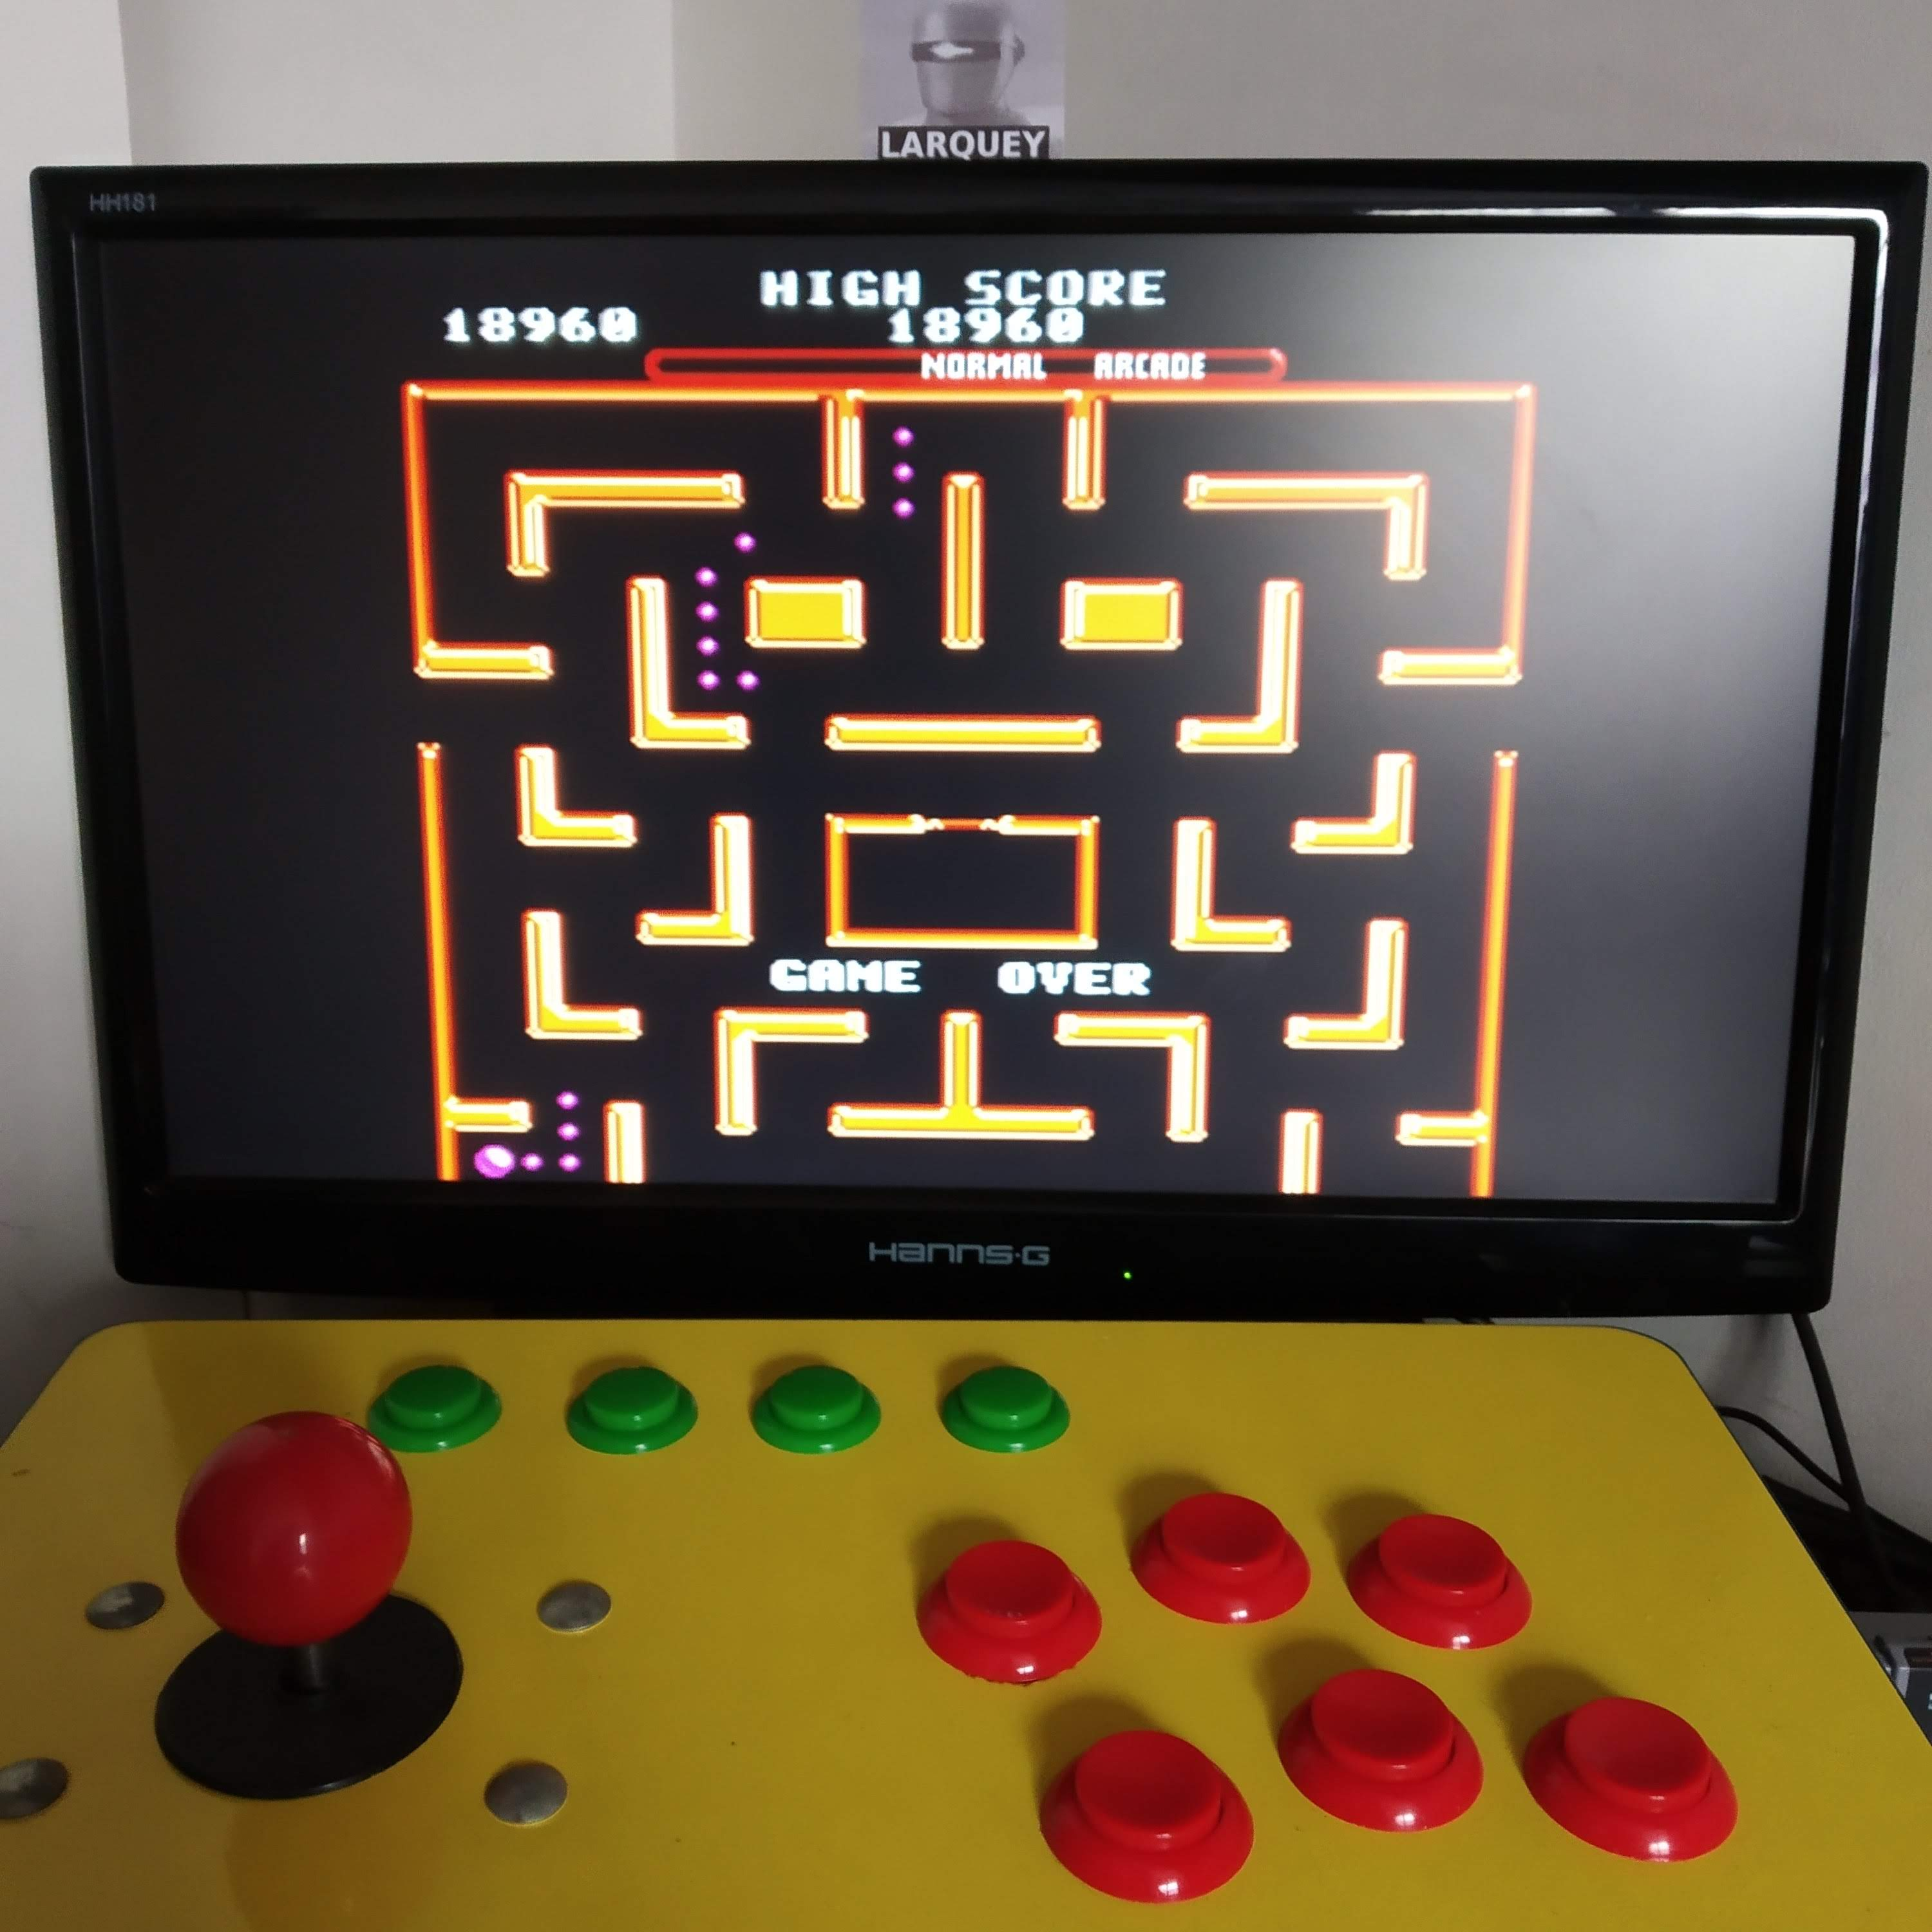 Larquey: Ms. Pac-Man [Off/ Normal/ Arcade/ Level 6 Start] (SNES/Super Famicom Emulated) 18,960 points on 2020-08-16 09:55:49